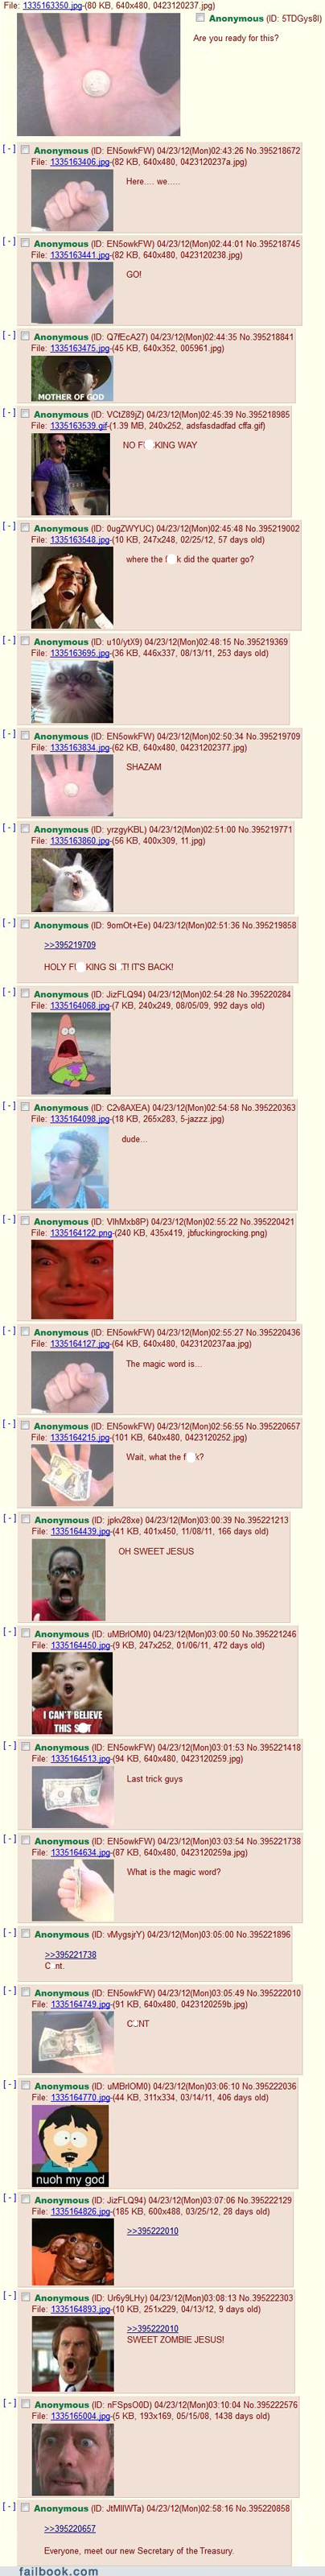 4chan magic magic trick